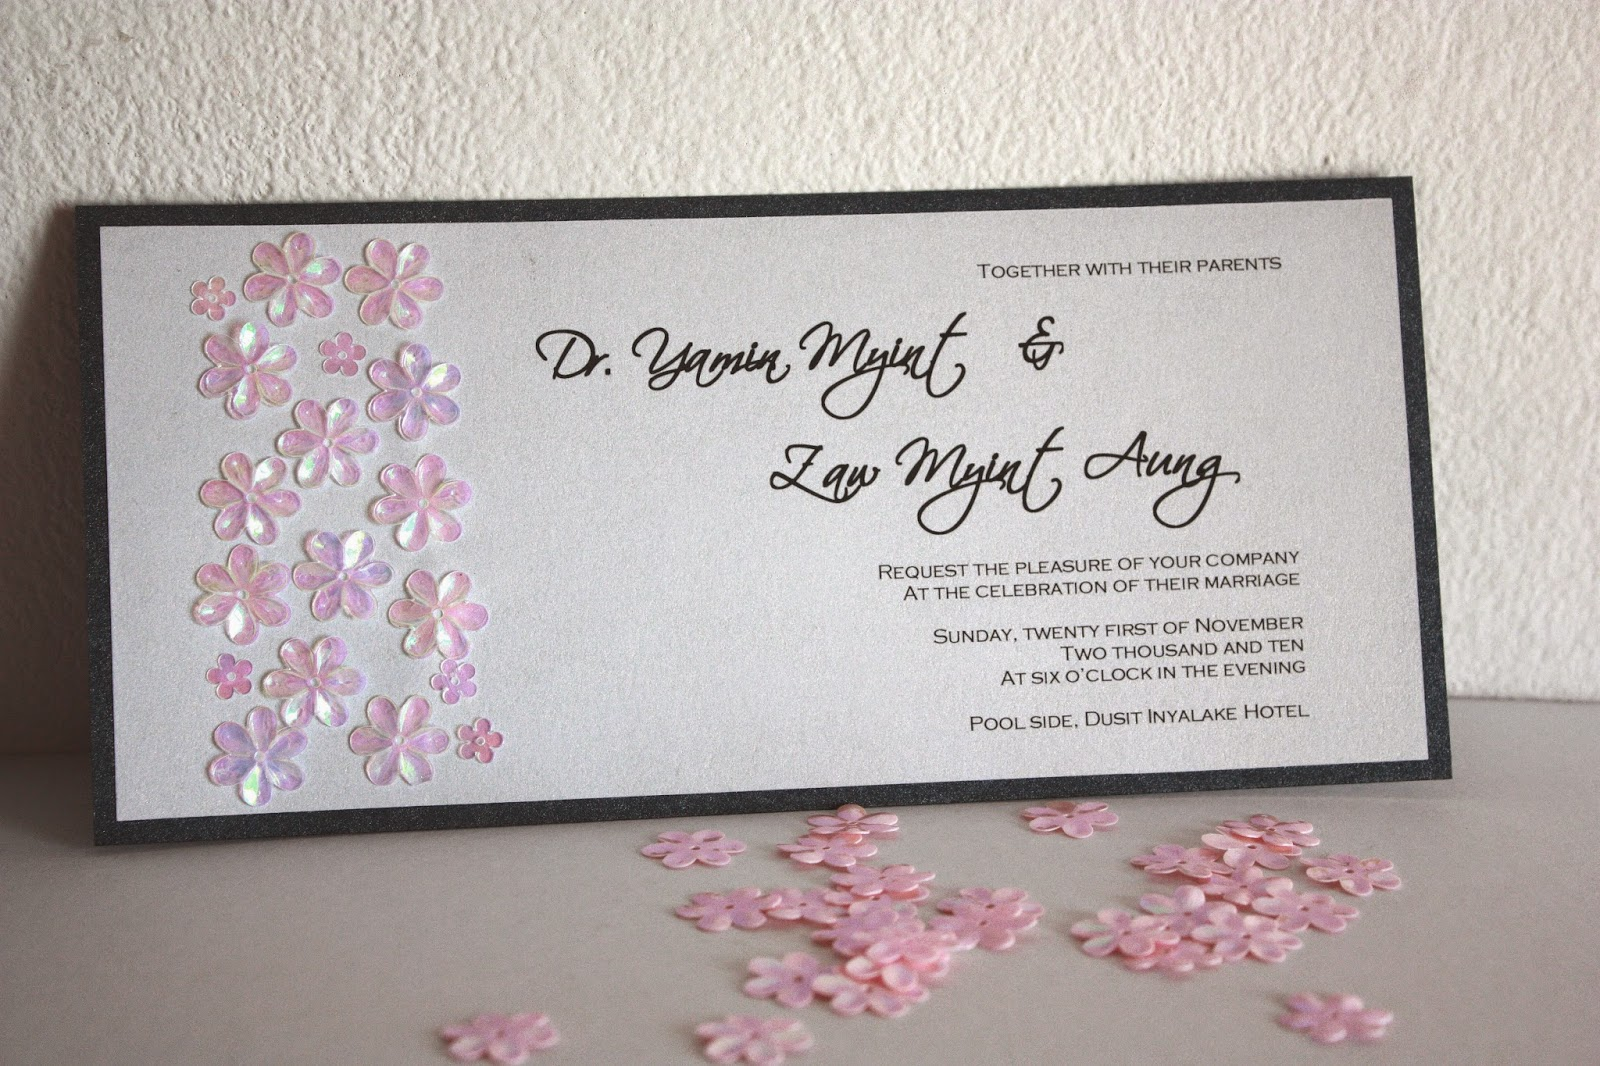 Floral sequined handmade wedding invitation card | Malaysia ...